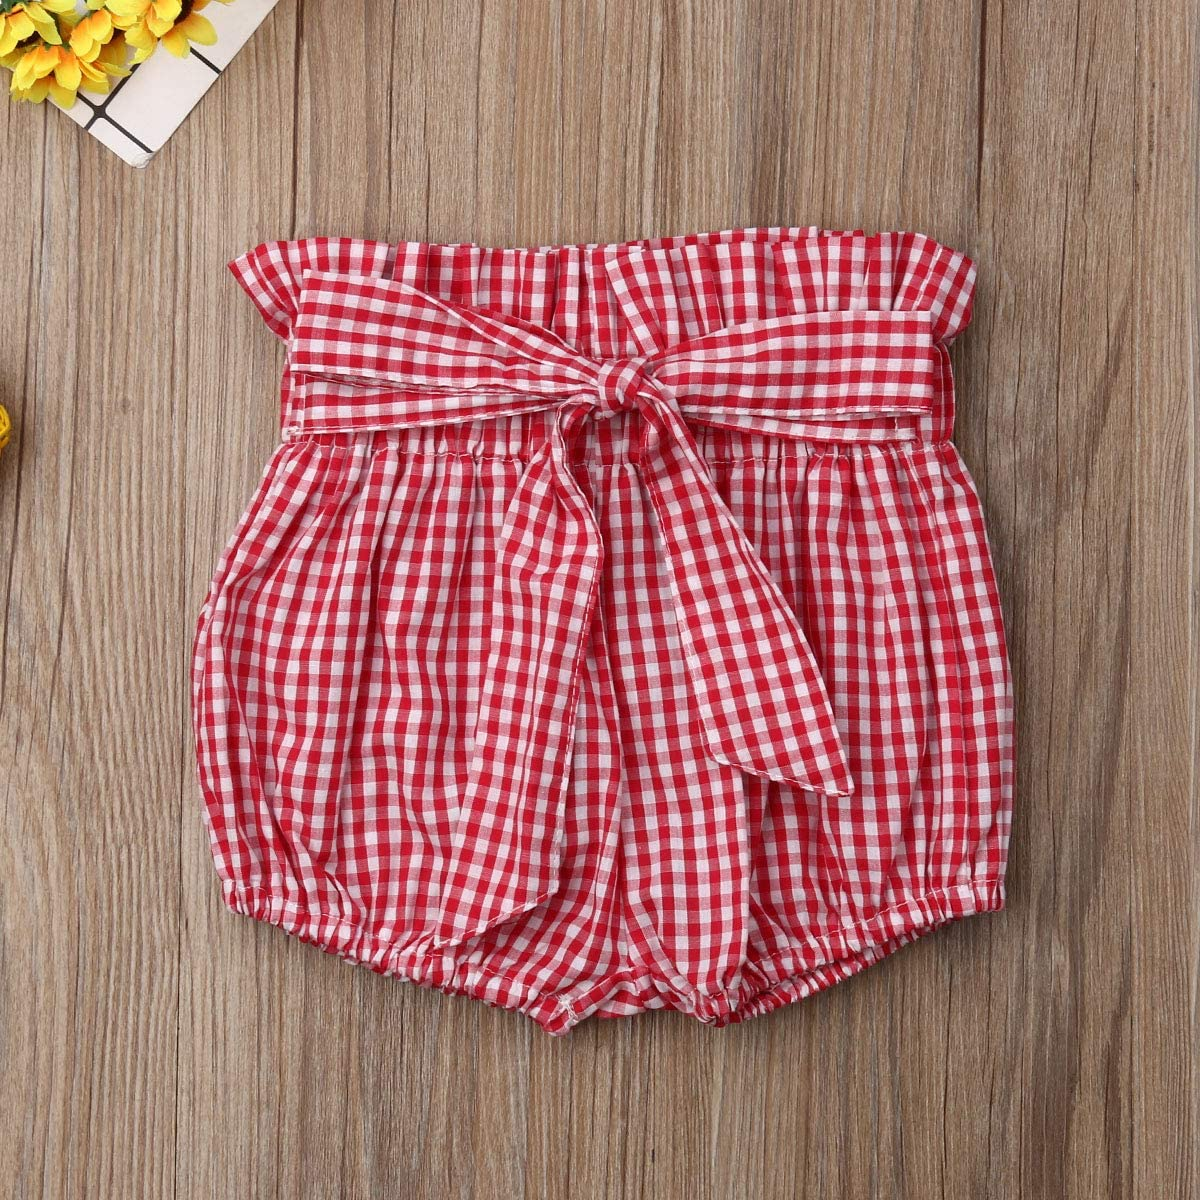 CQHY MALL Baby Girls Bowknot Harem Pants Toddler Infant Cute Summer Bloomer Shorts